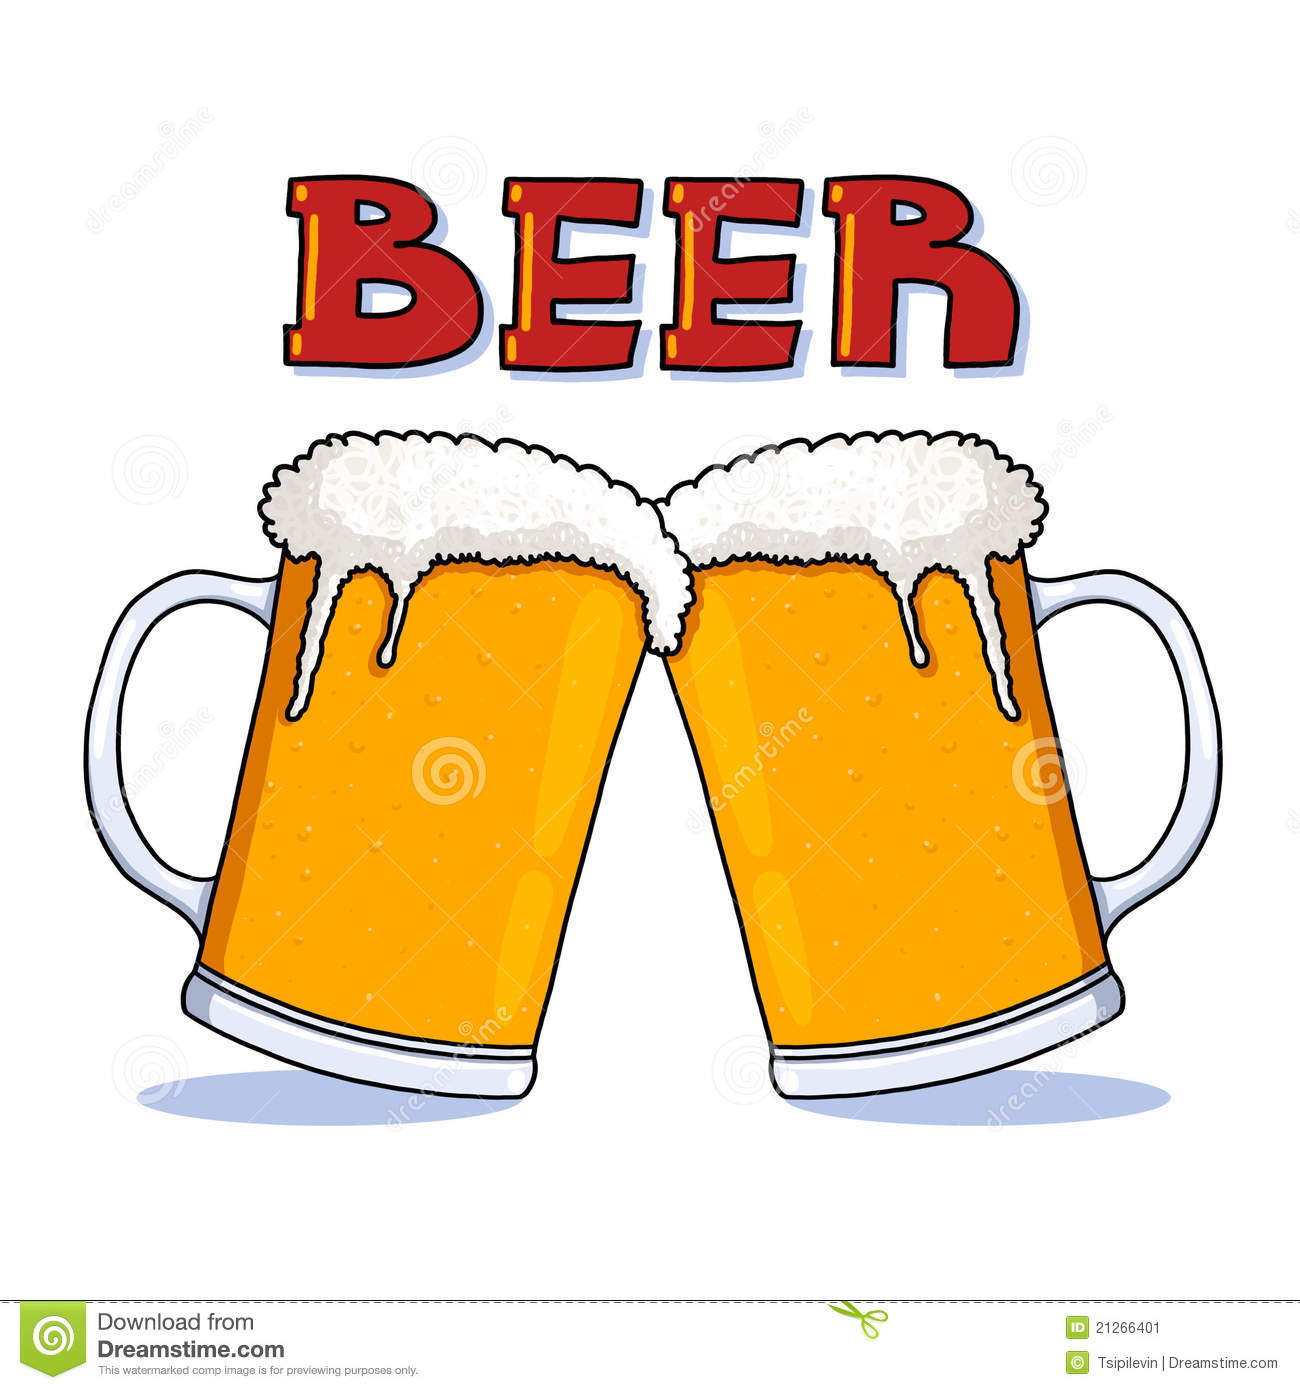 Beer Mugs Illustration Stock Image - Image: 21266401 Animated Beer Cheers